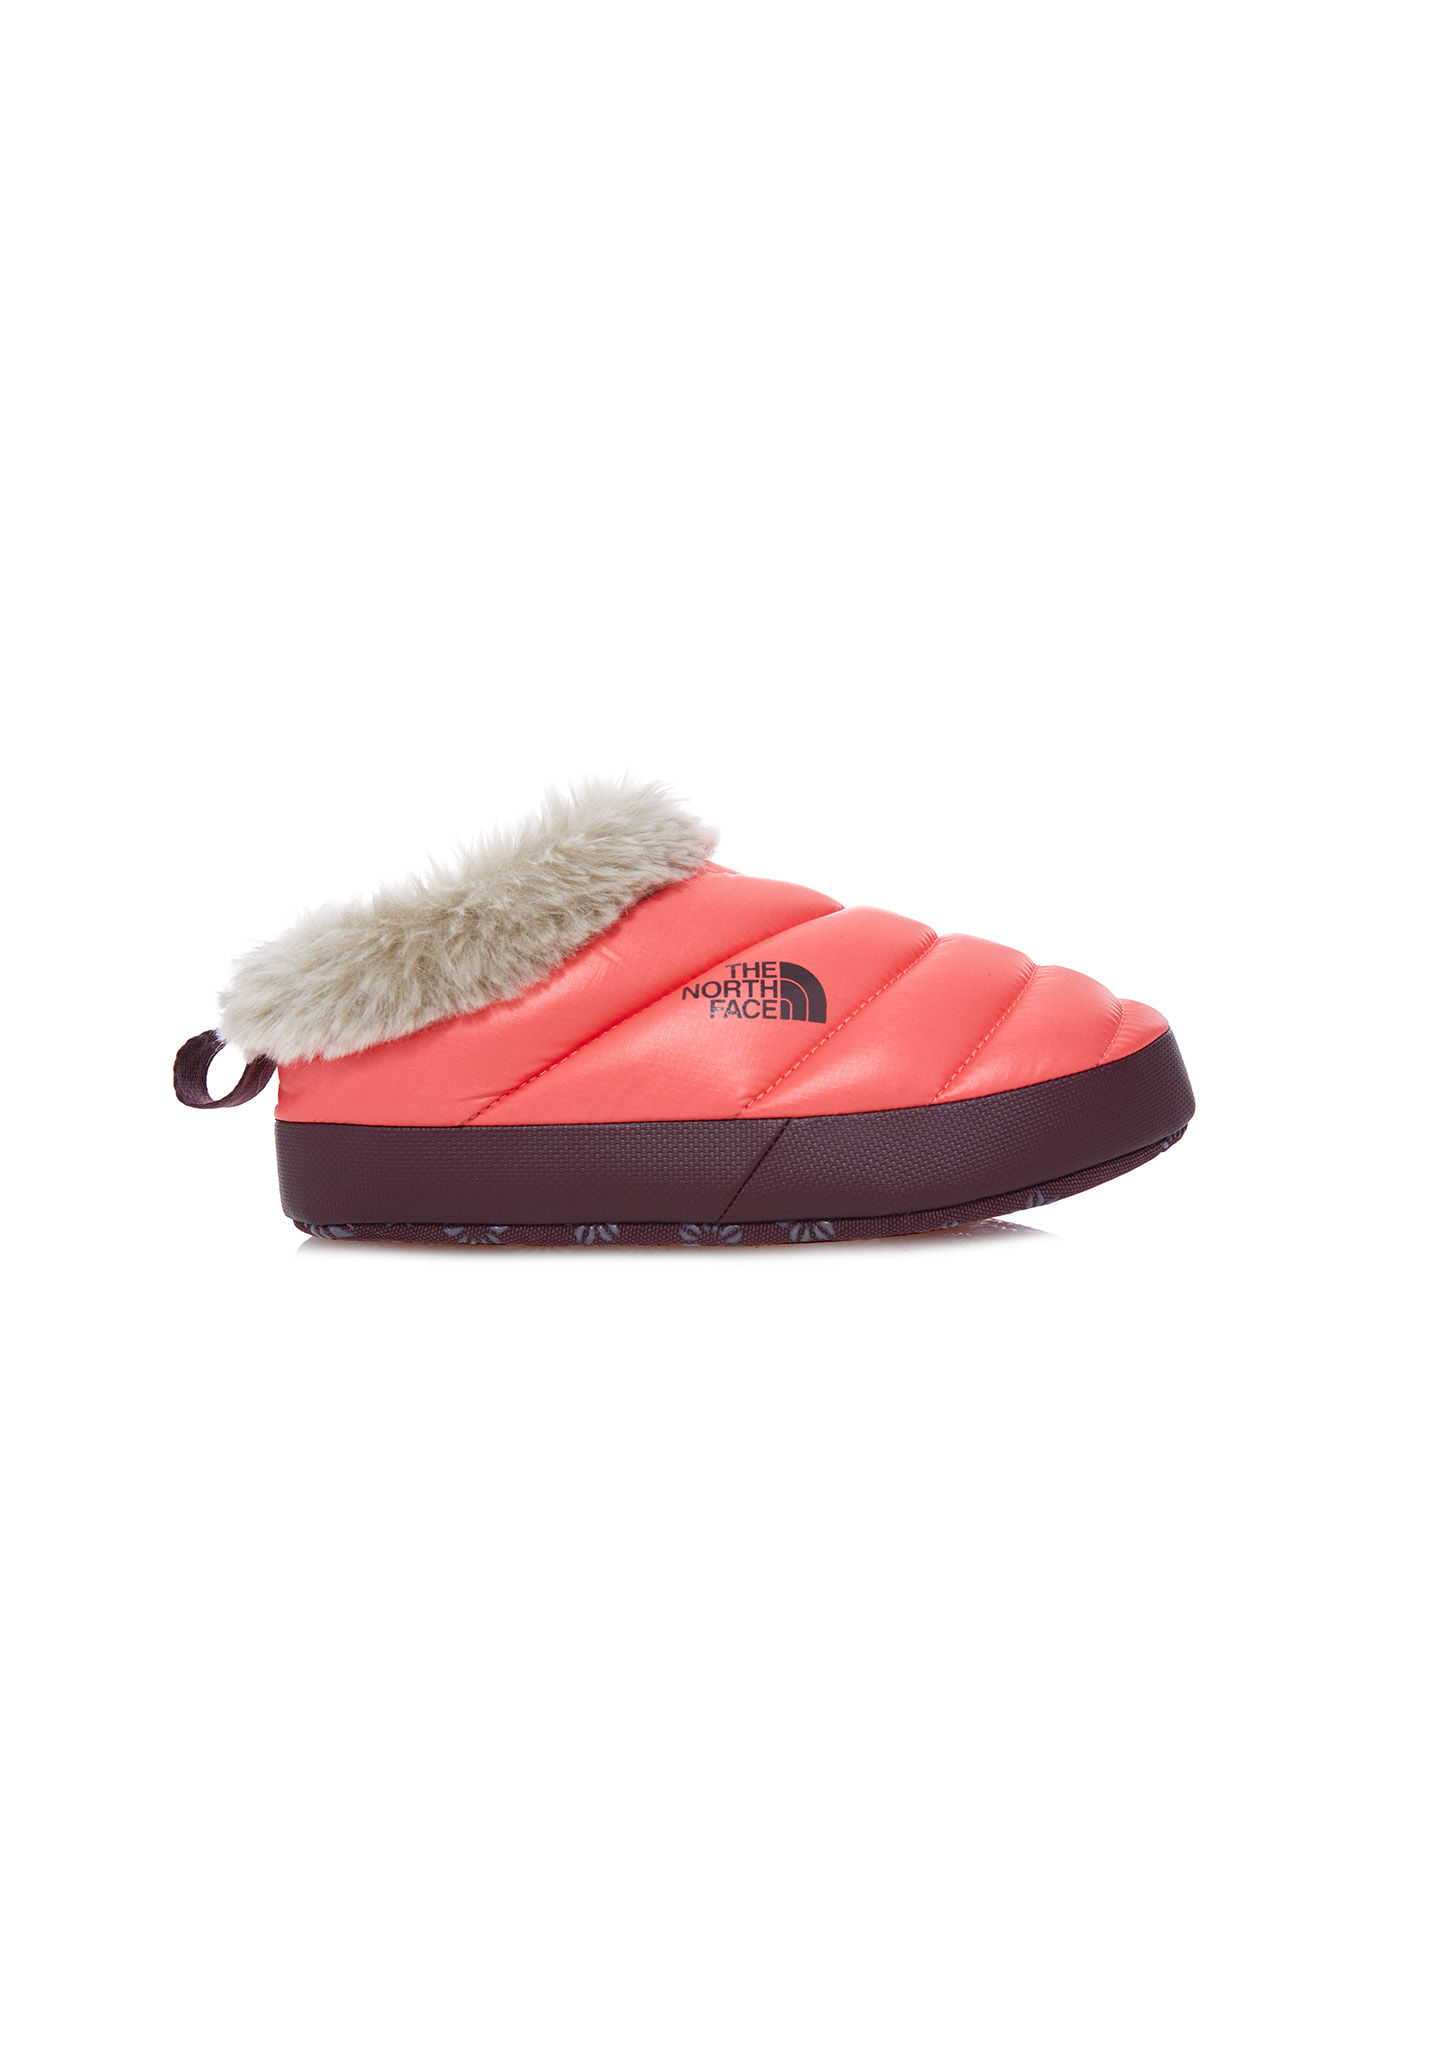 38ab6ee9735 THE NORTH FACE Nse Tent Mule Faux Fur II - Slippers for Women - Pink -  Planet Sports